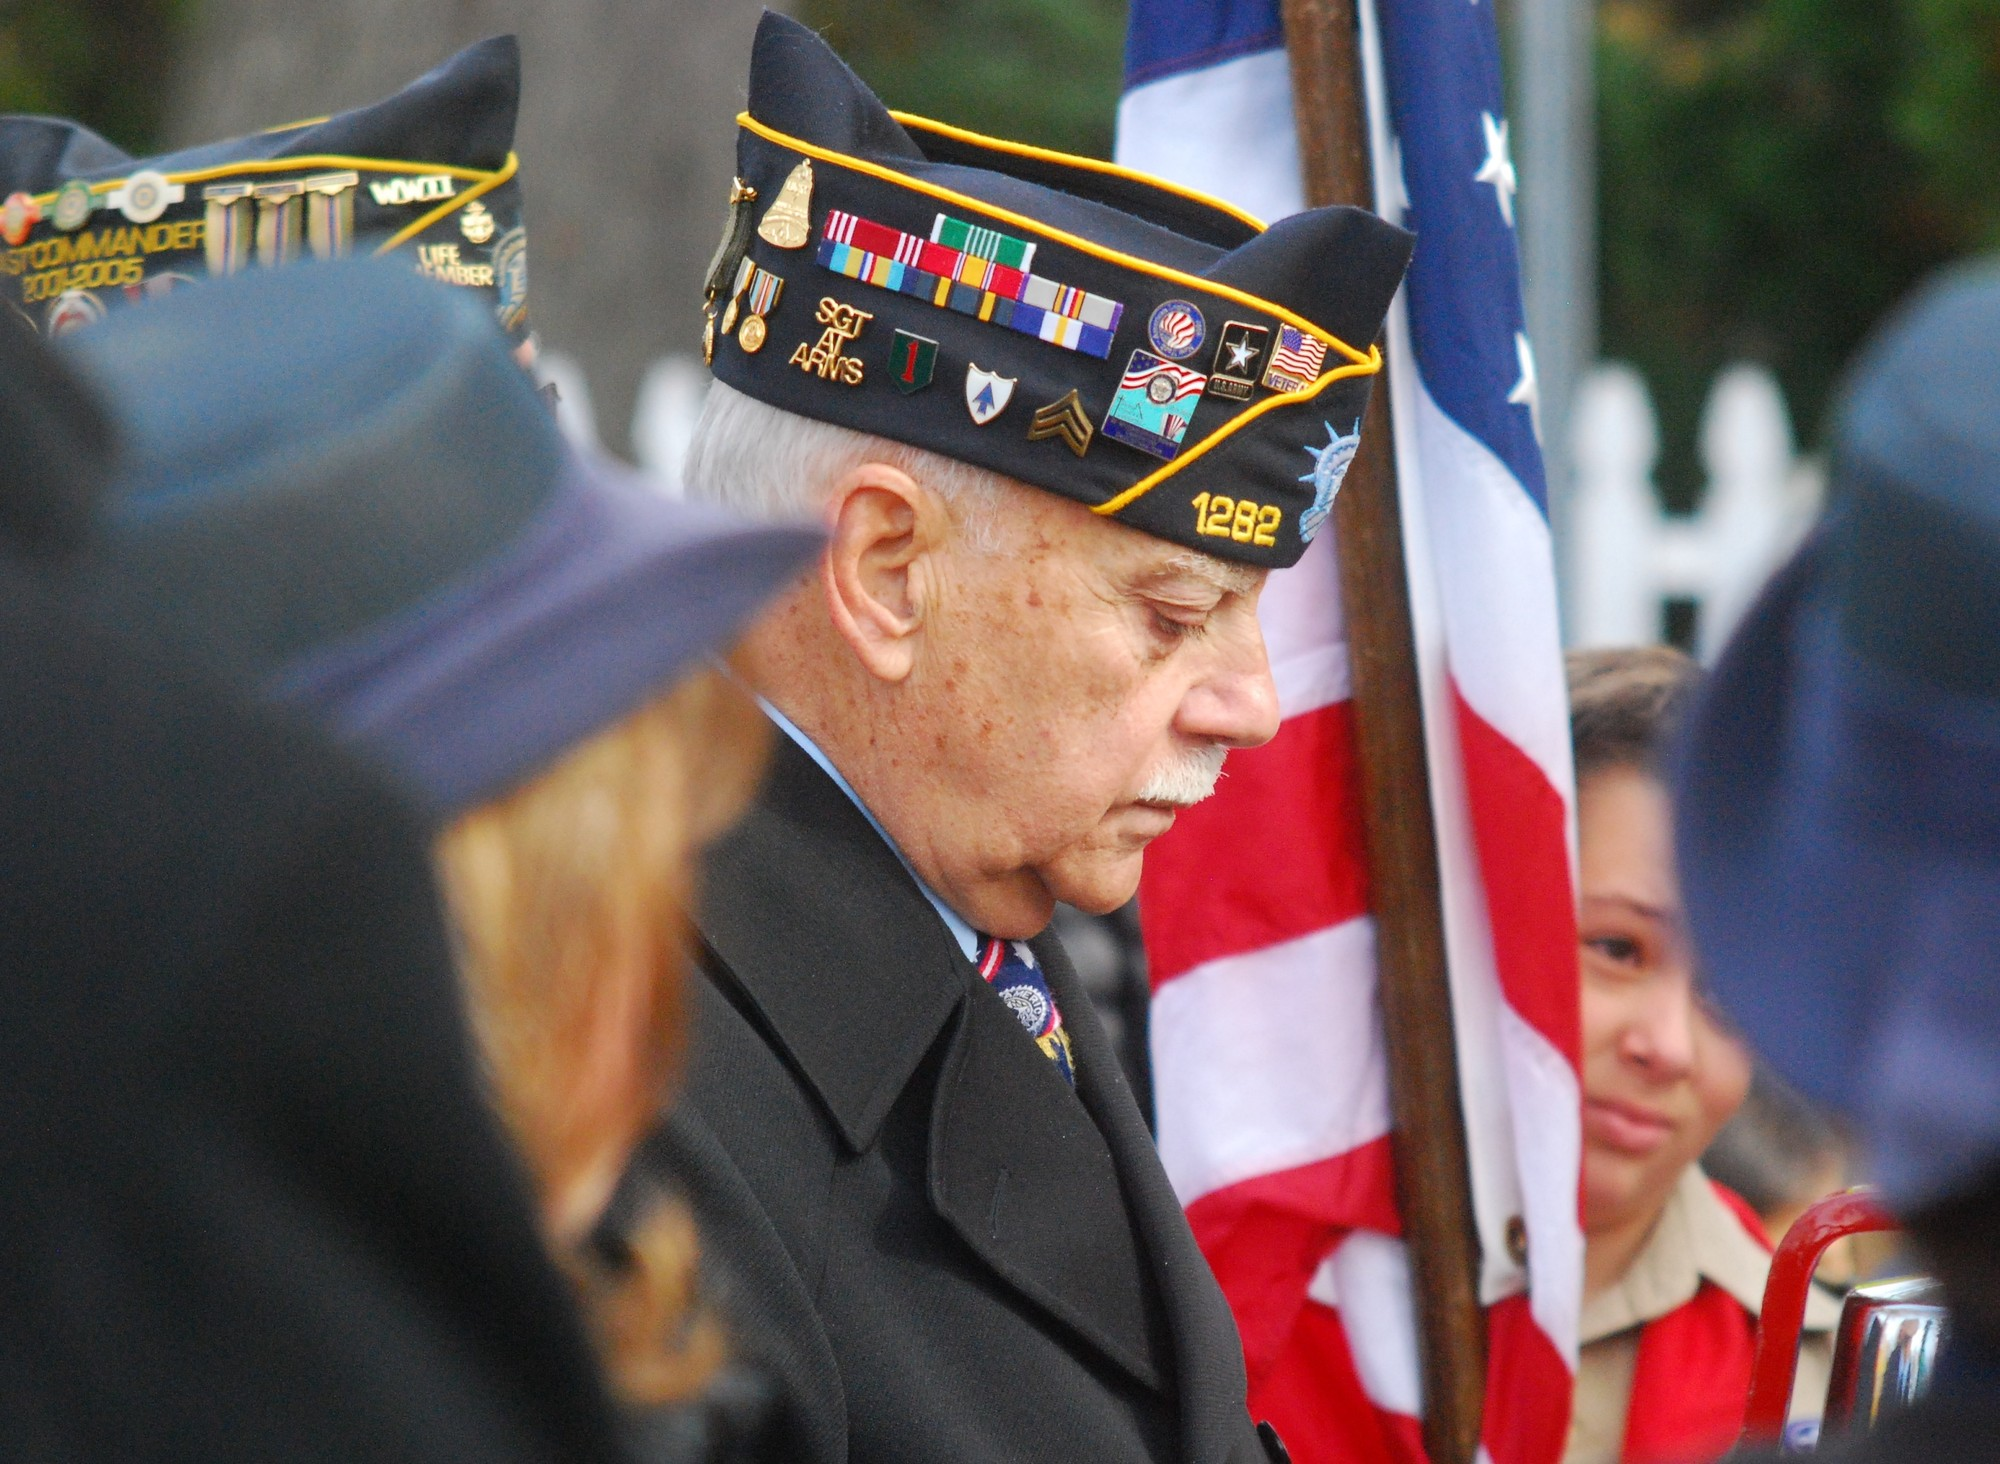 Joseph Ambrosino, Merrick American Legion Post 1282's sergeant-at-arms, observed a moment of silence during last year's Veterans Day ceremony at Veterans Memorial Park in North Merrick.